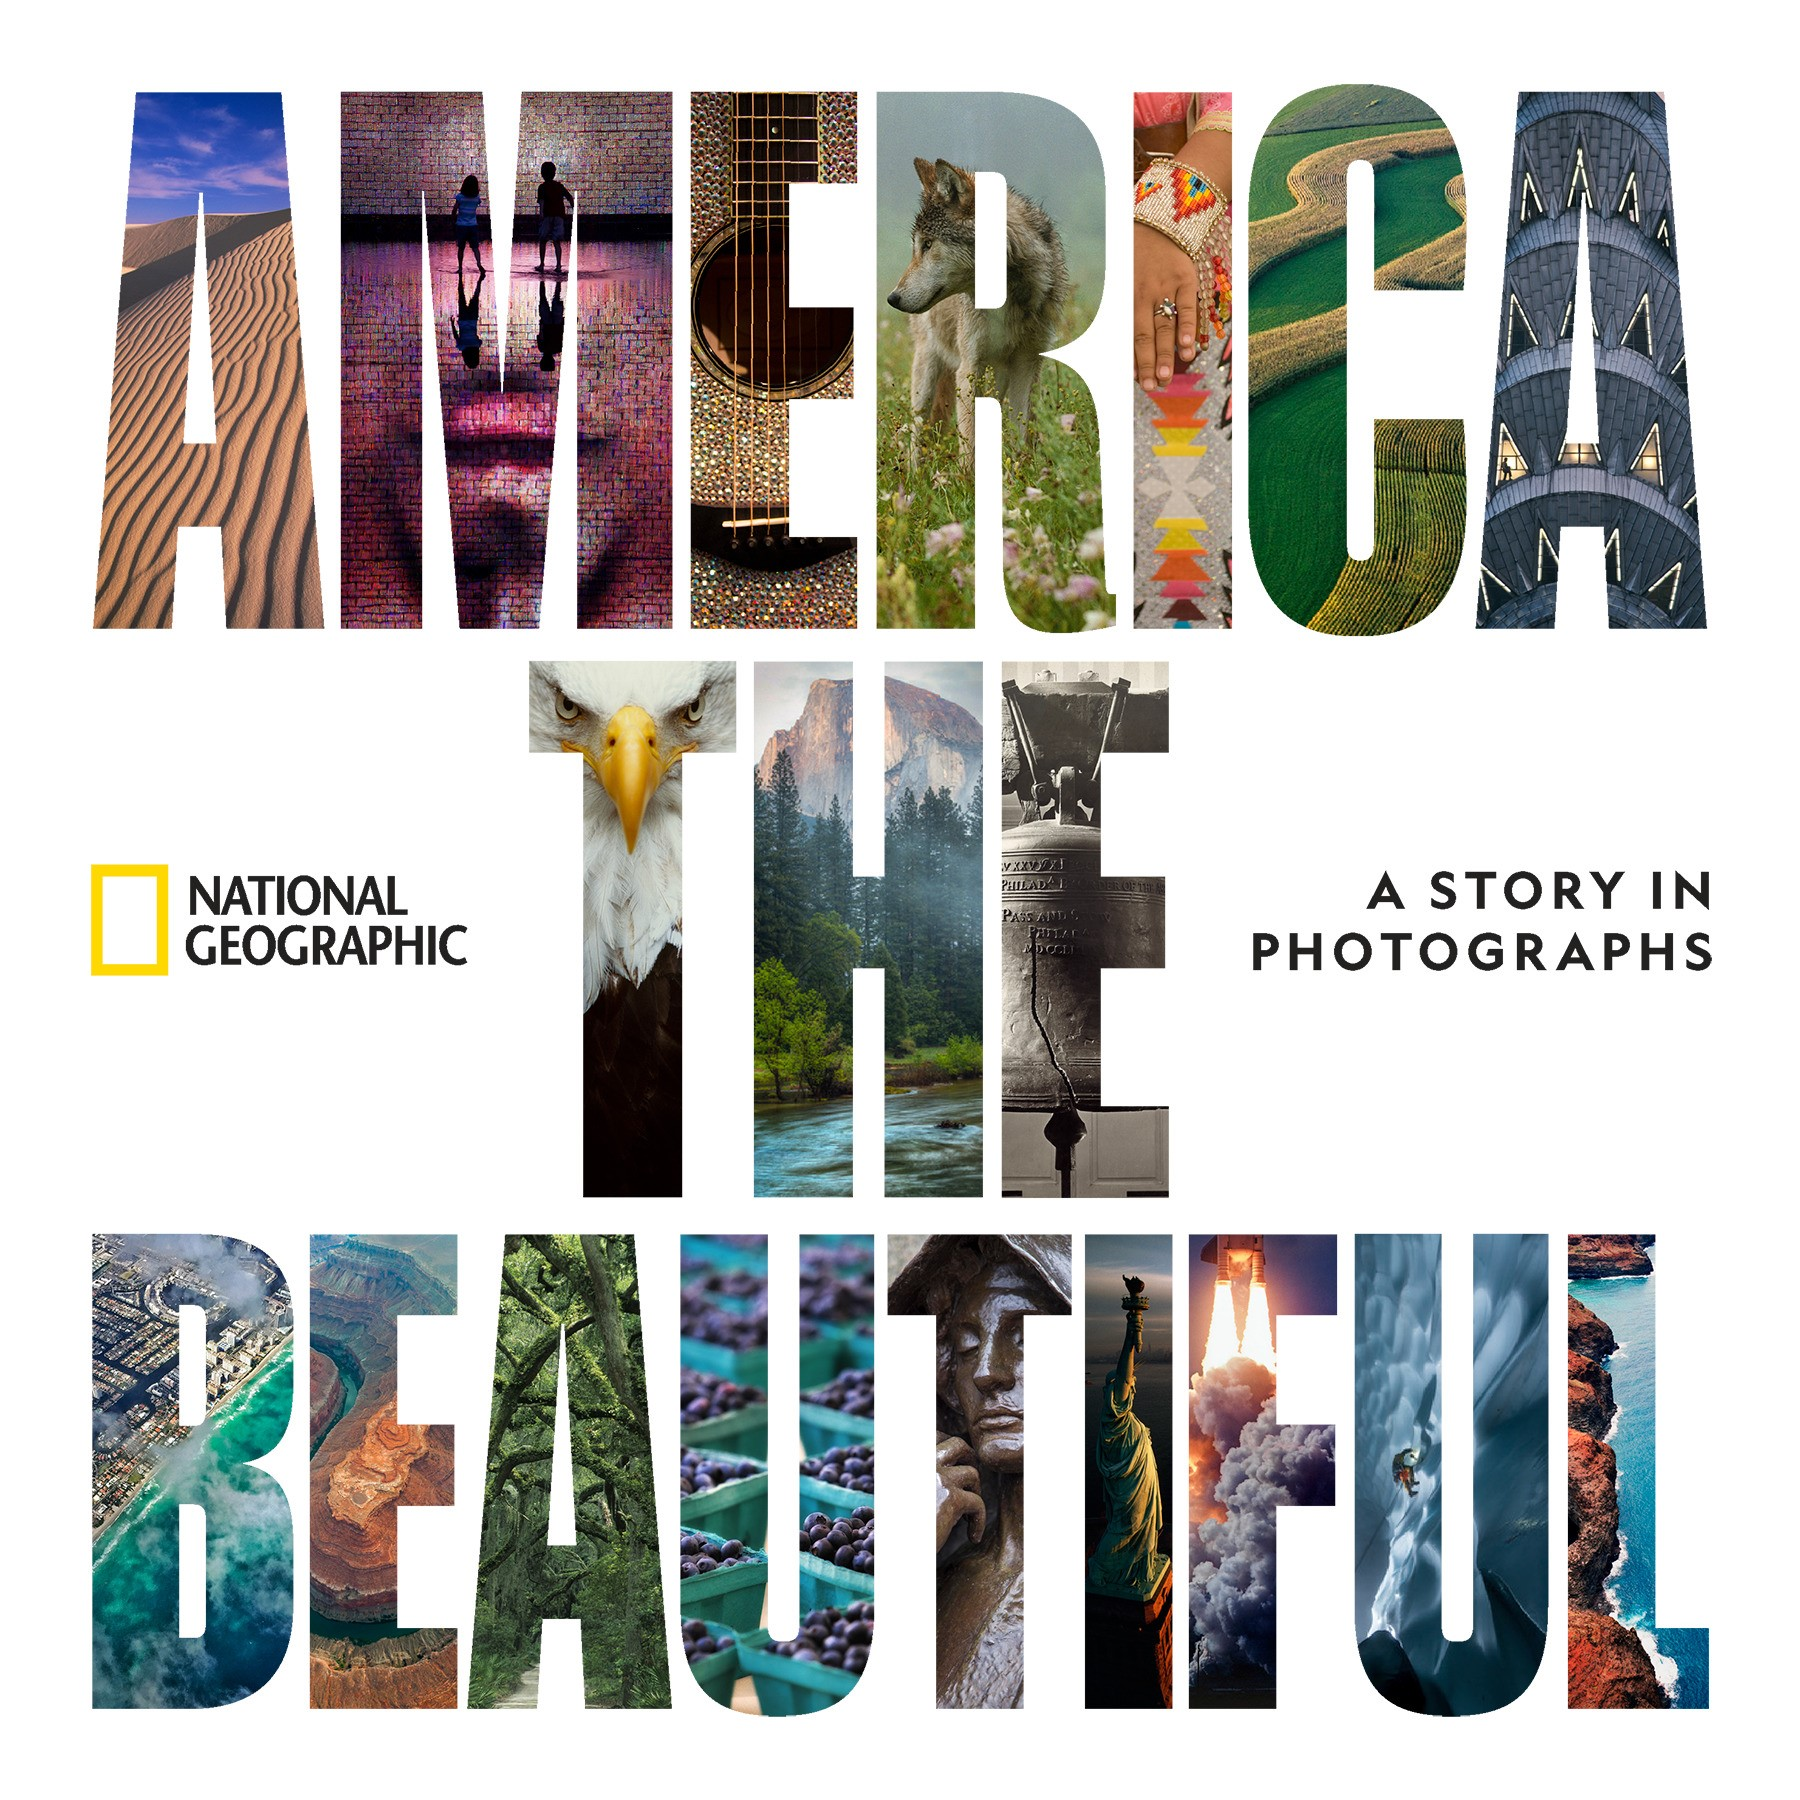 America The Beautiful | Susan Goldberg